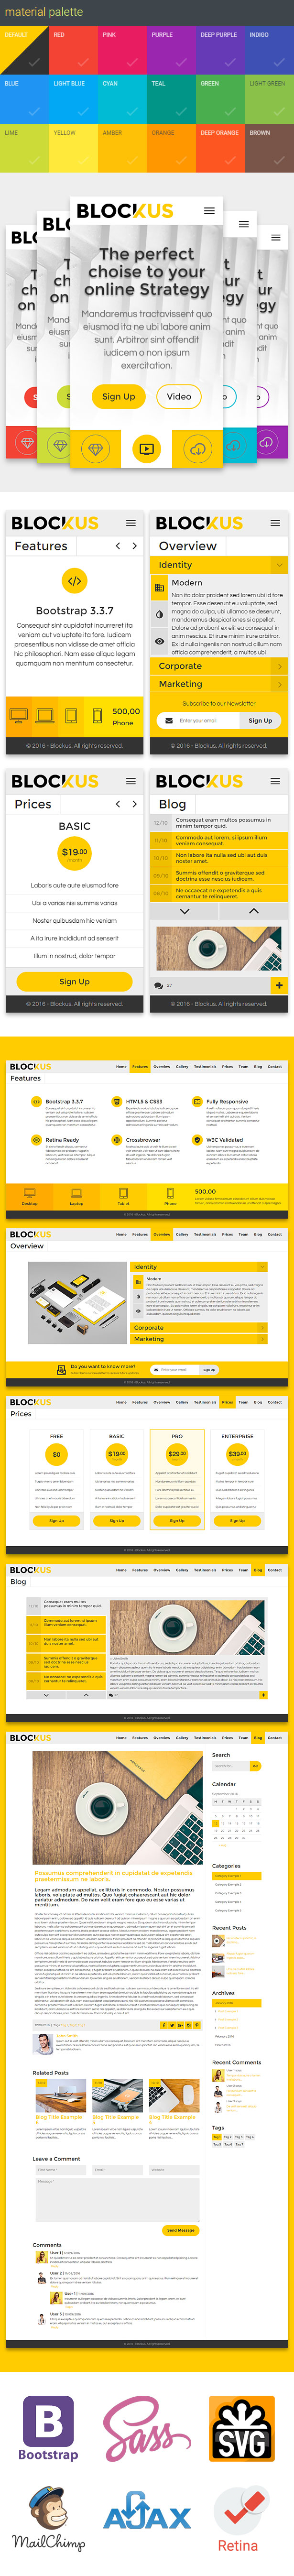 Blockus Features